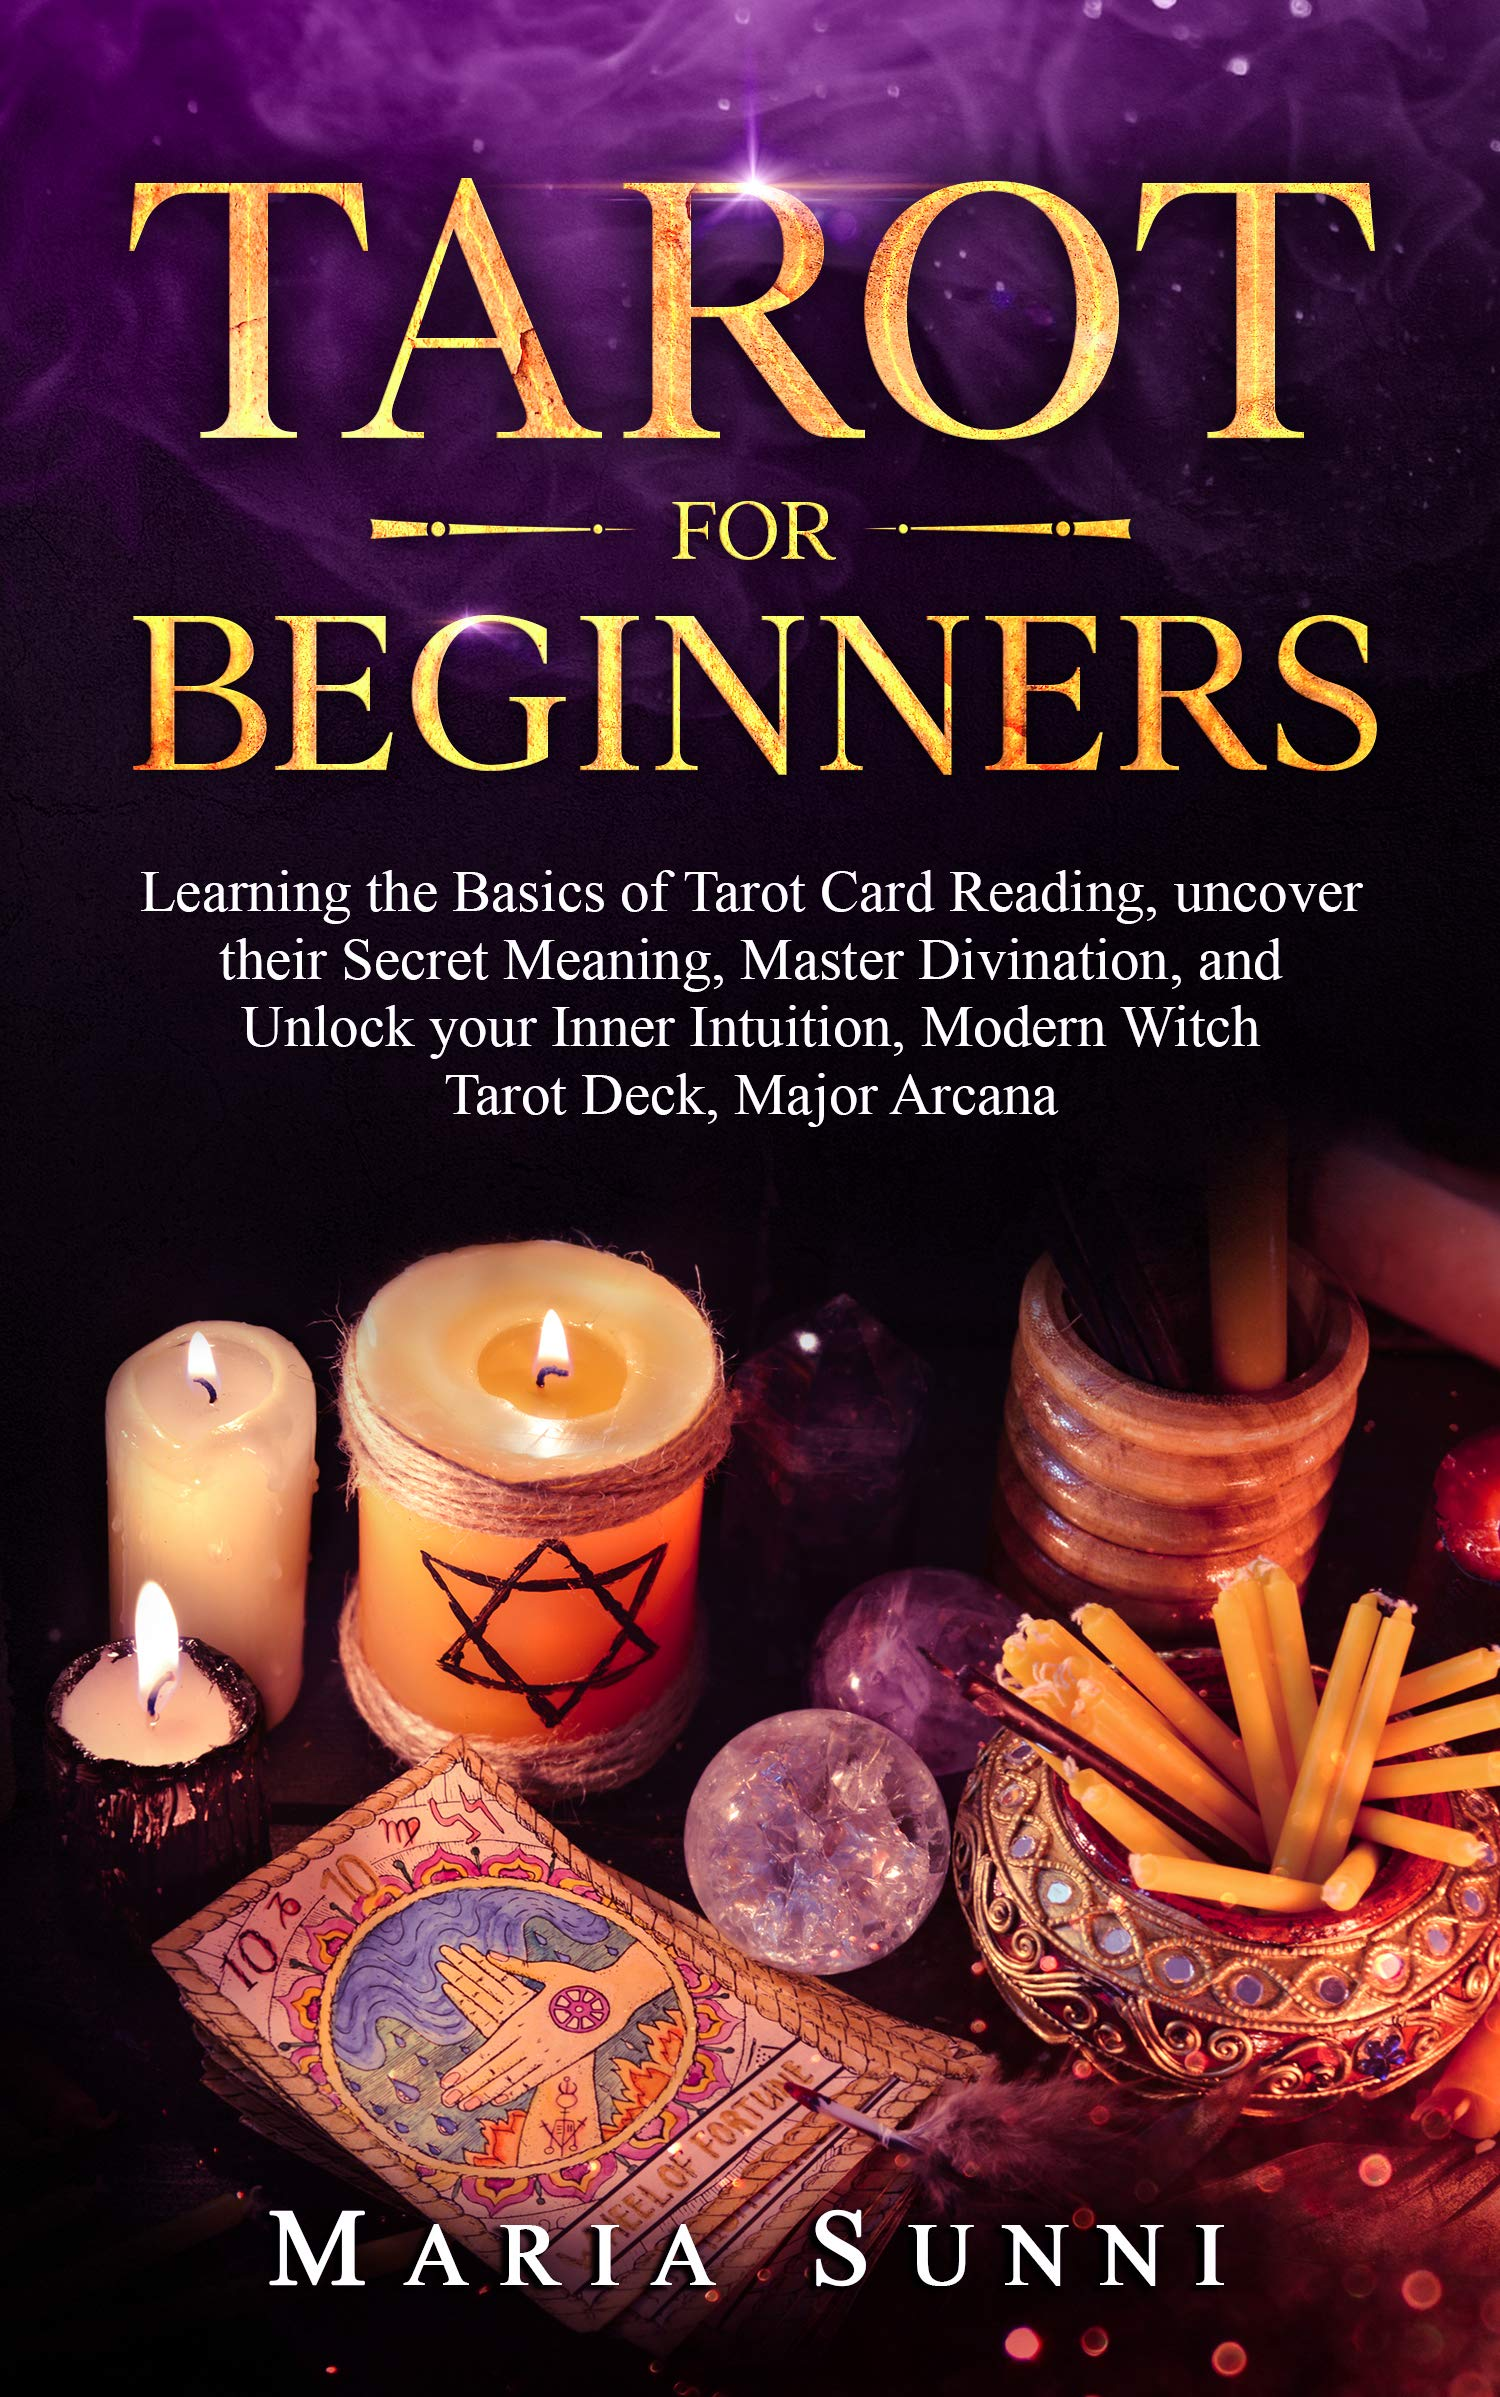 TAROT FOR BEGINNERS: Learning the Basics of Tarot Card Reading, uncover their Secret Meaning, Master Divination, and Unlock your Inner Intuition, Modern Witch Tarot Deck, Major Arcana